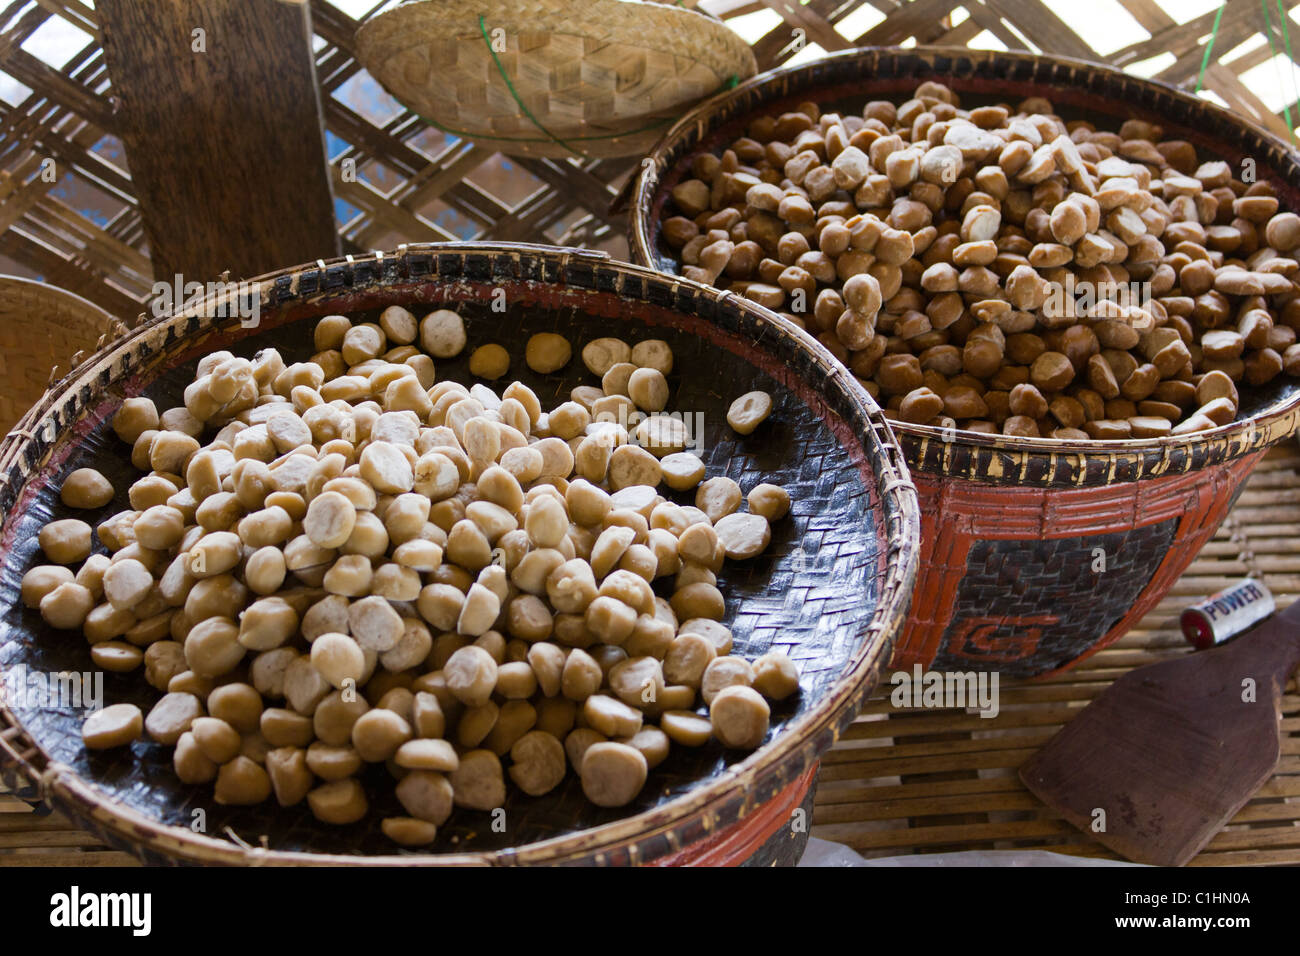 sugar lumps made from the Palmyra or toddy palm, near Bagan, Myanmar - Stock Image